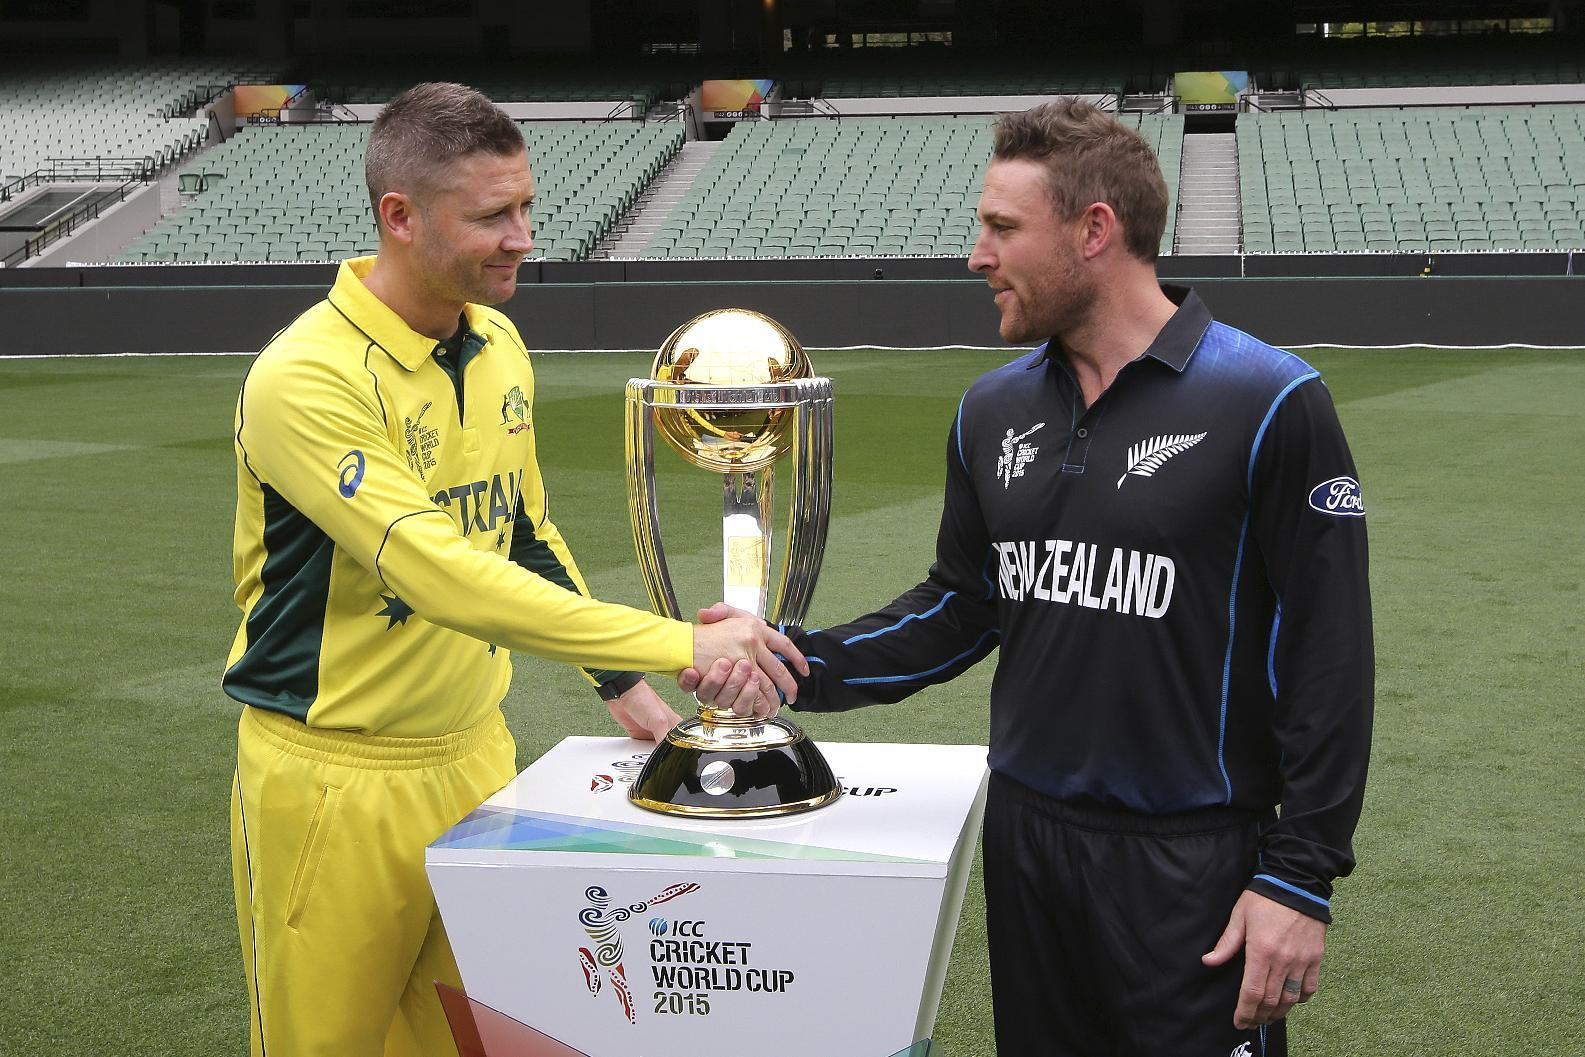 What to Watch in the Cricket World Cup final